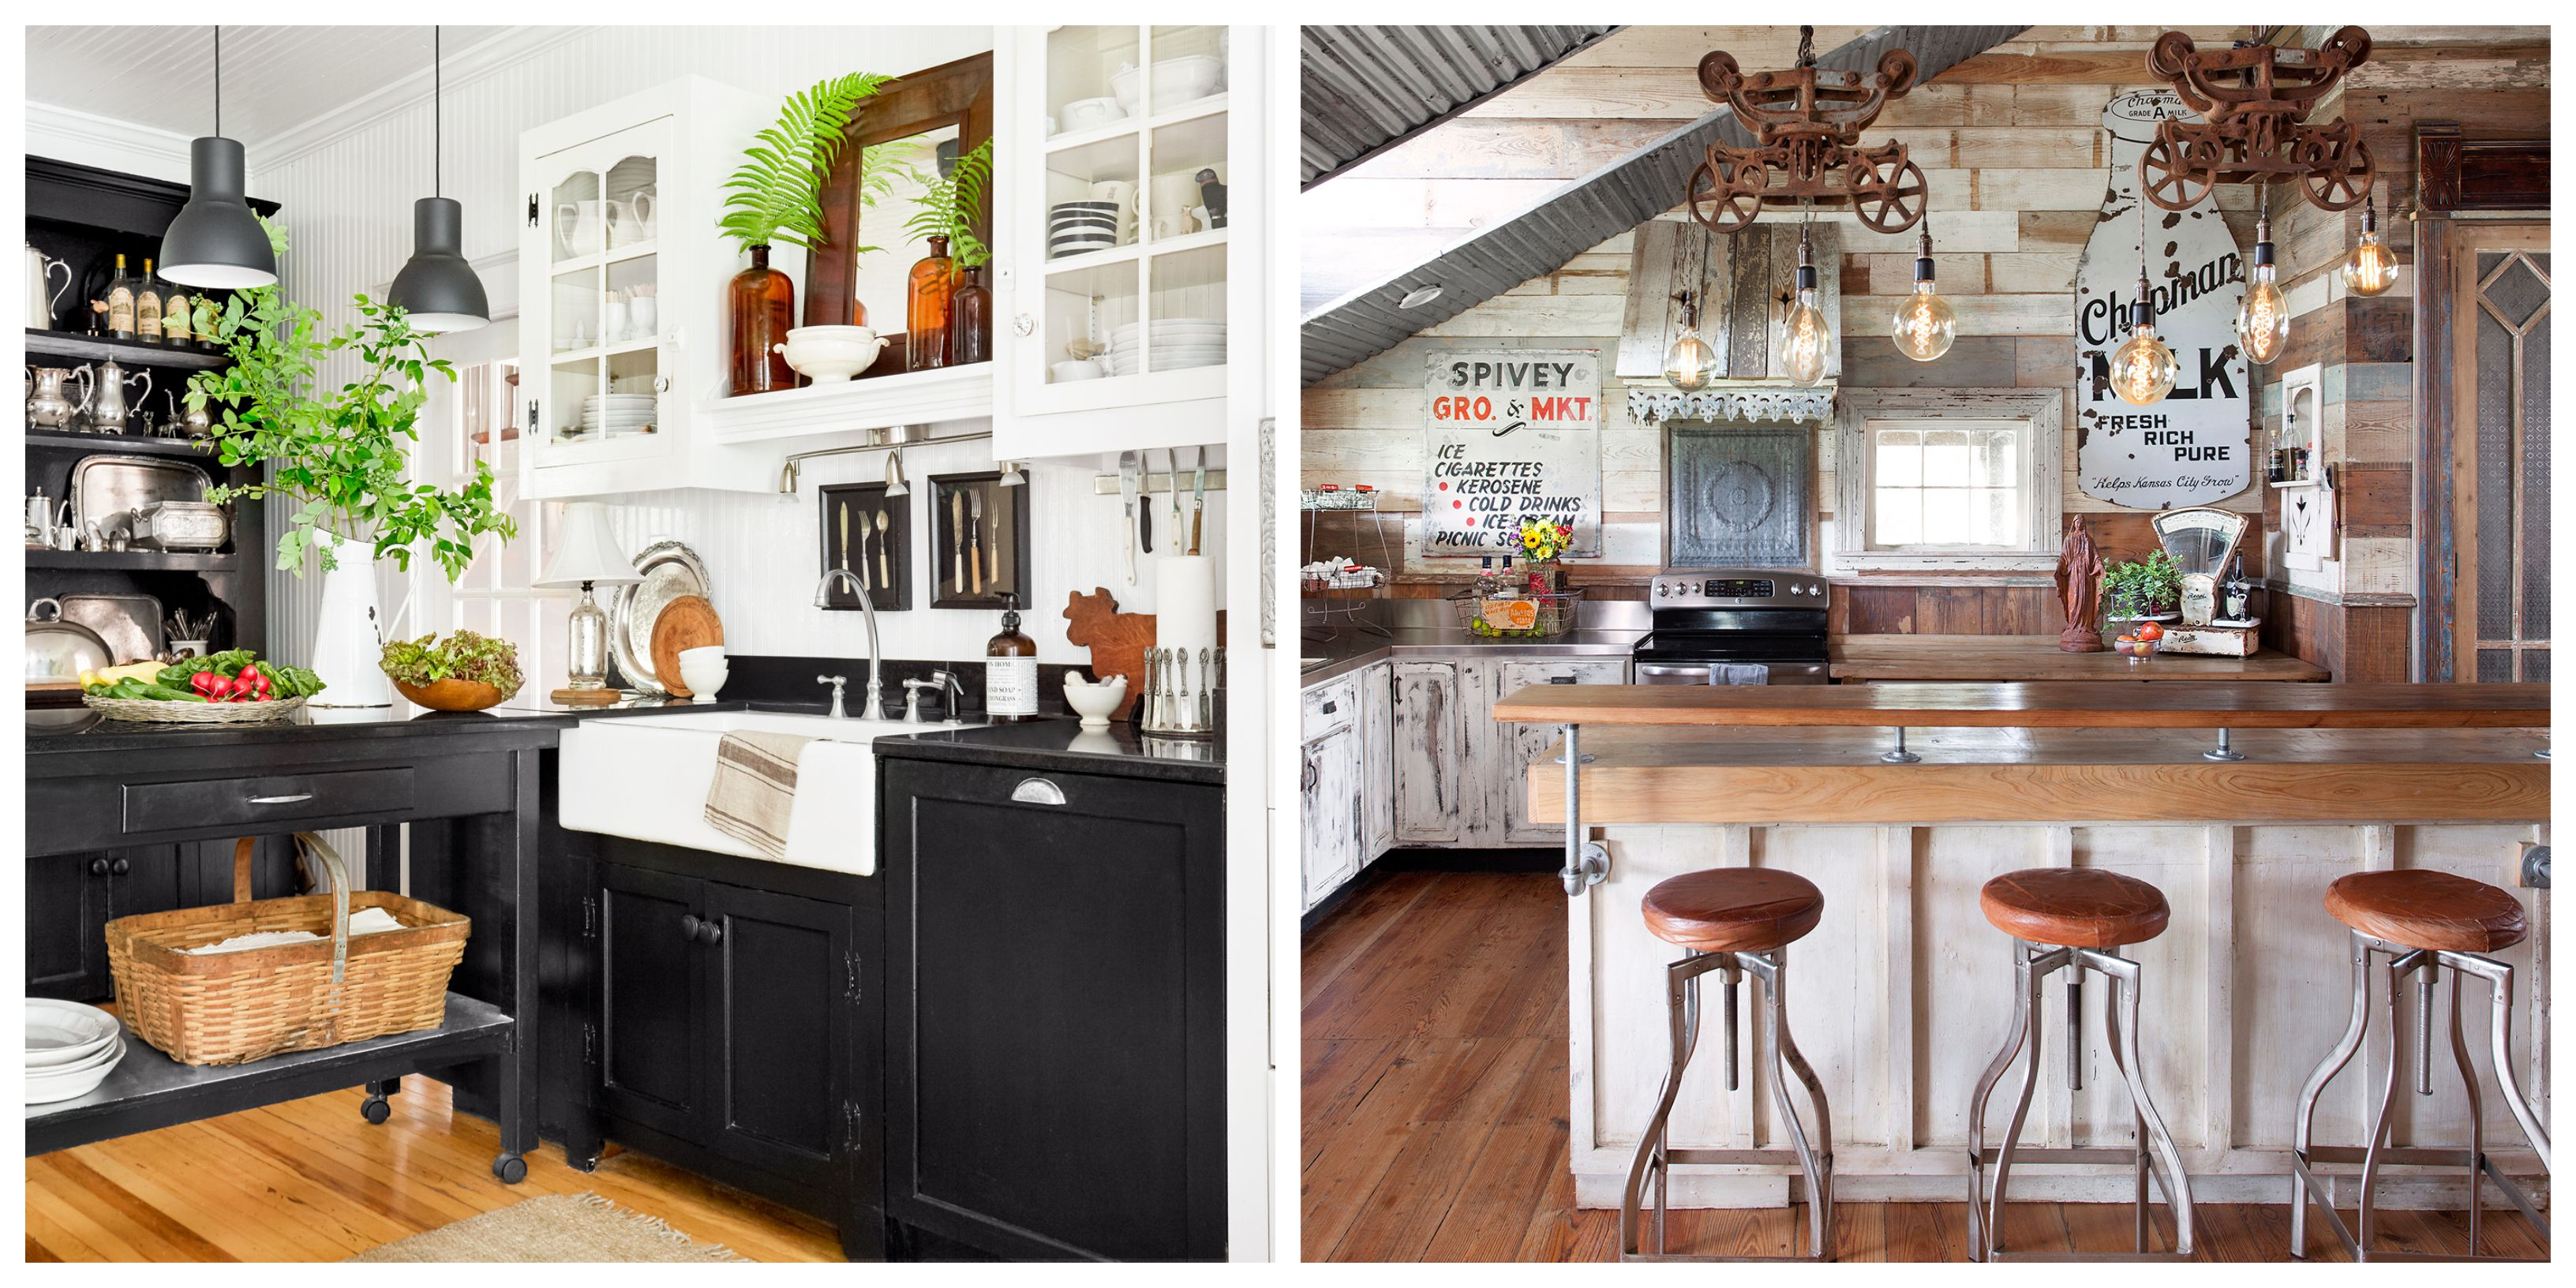 Widely Used 34 Farmhouse Style Kitchens – Rustic Decor Ideas For Kitchens With Farm Metal Wall Rack And 3 Tin Pot With Hanger Wall Decor (Gallery 16 of 20)